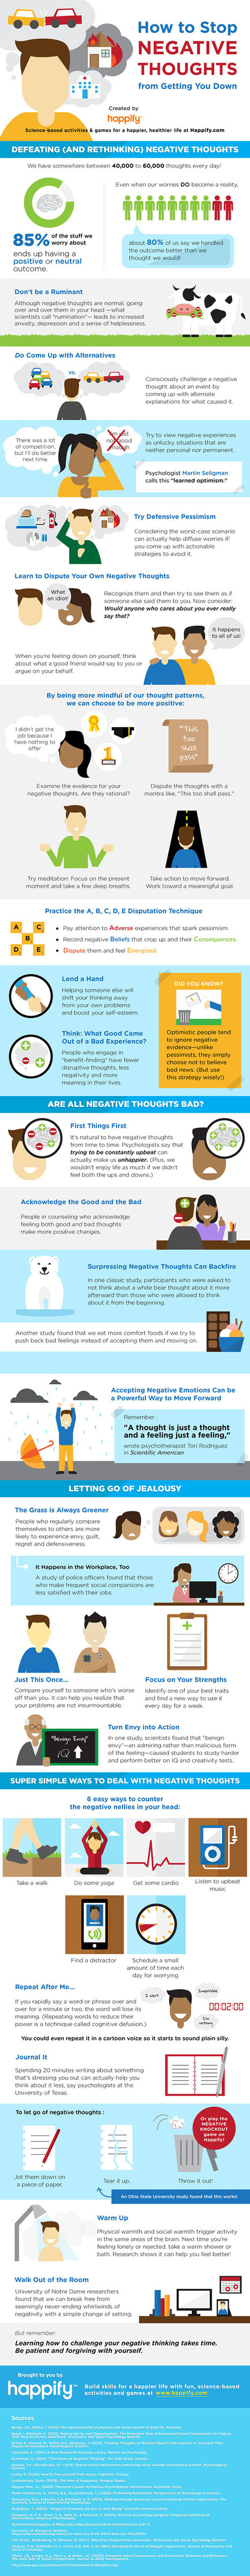 This Infographic Teaches You to How to Stop Negative Thoughts - SELF | Emotional Intelligence | Scoop.it